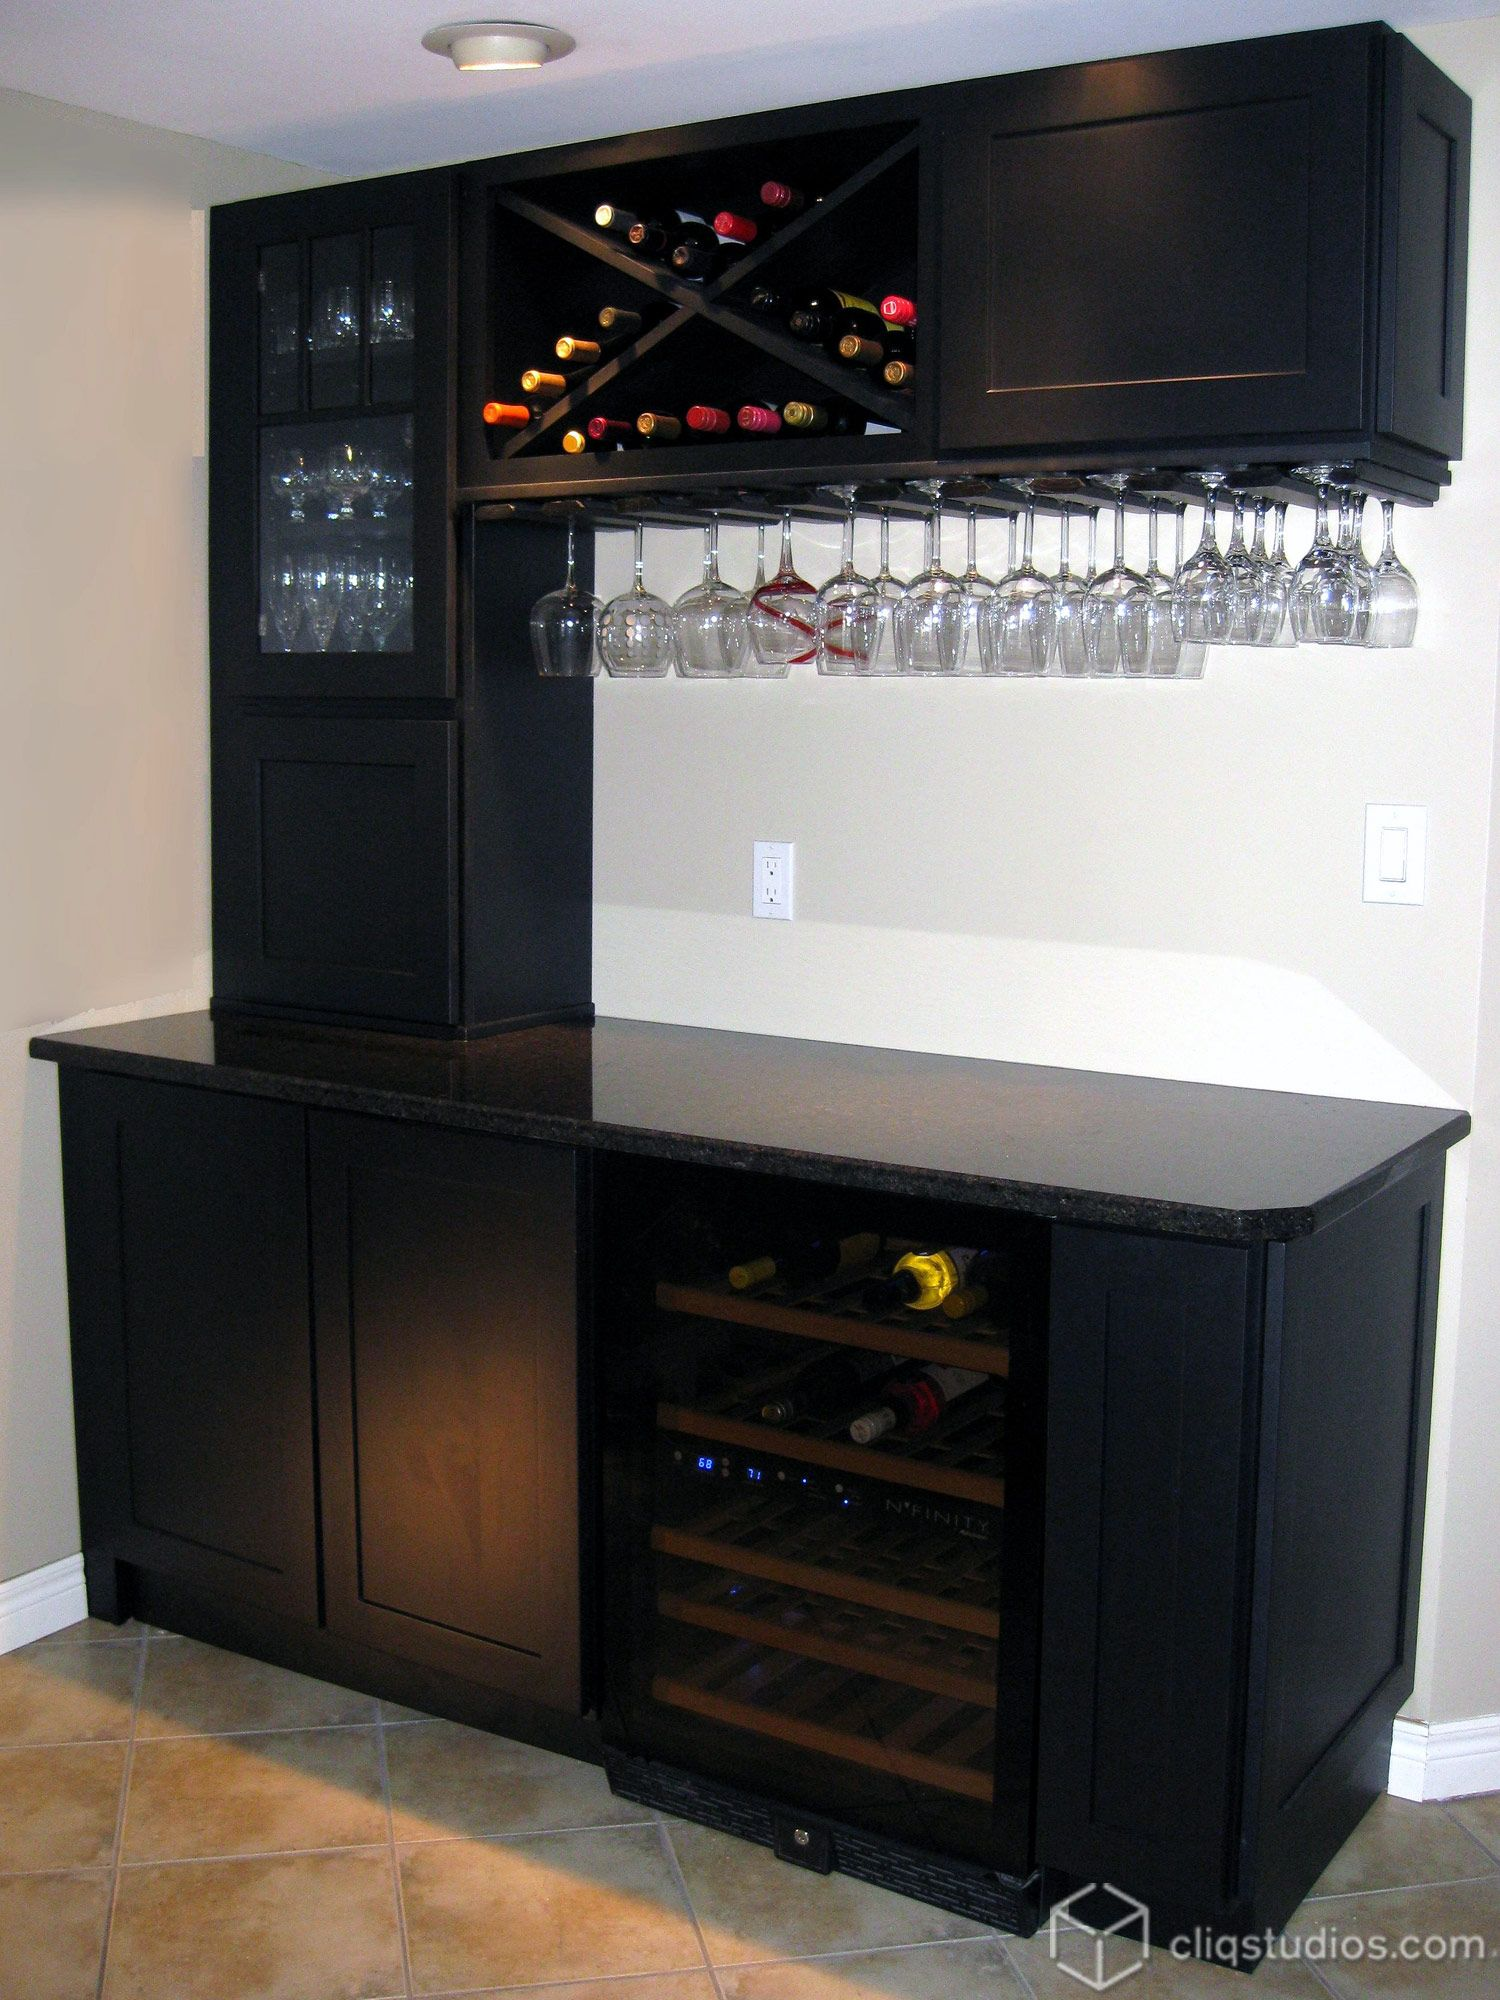 This Basement Bar Creates A Great Space For Serving And Entertaining The Custom Desig Kitchen Cabinet Design Basement Bar Design Kitchen Designs Photo Gallery